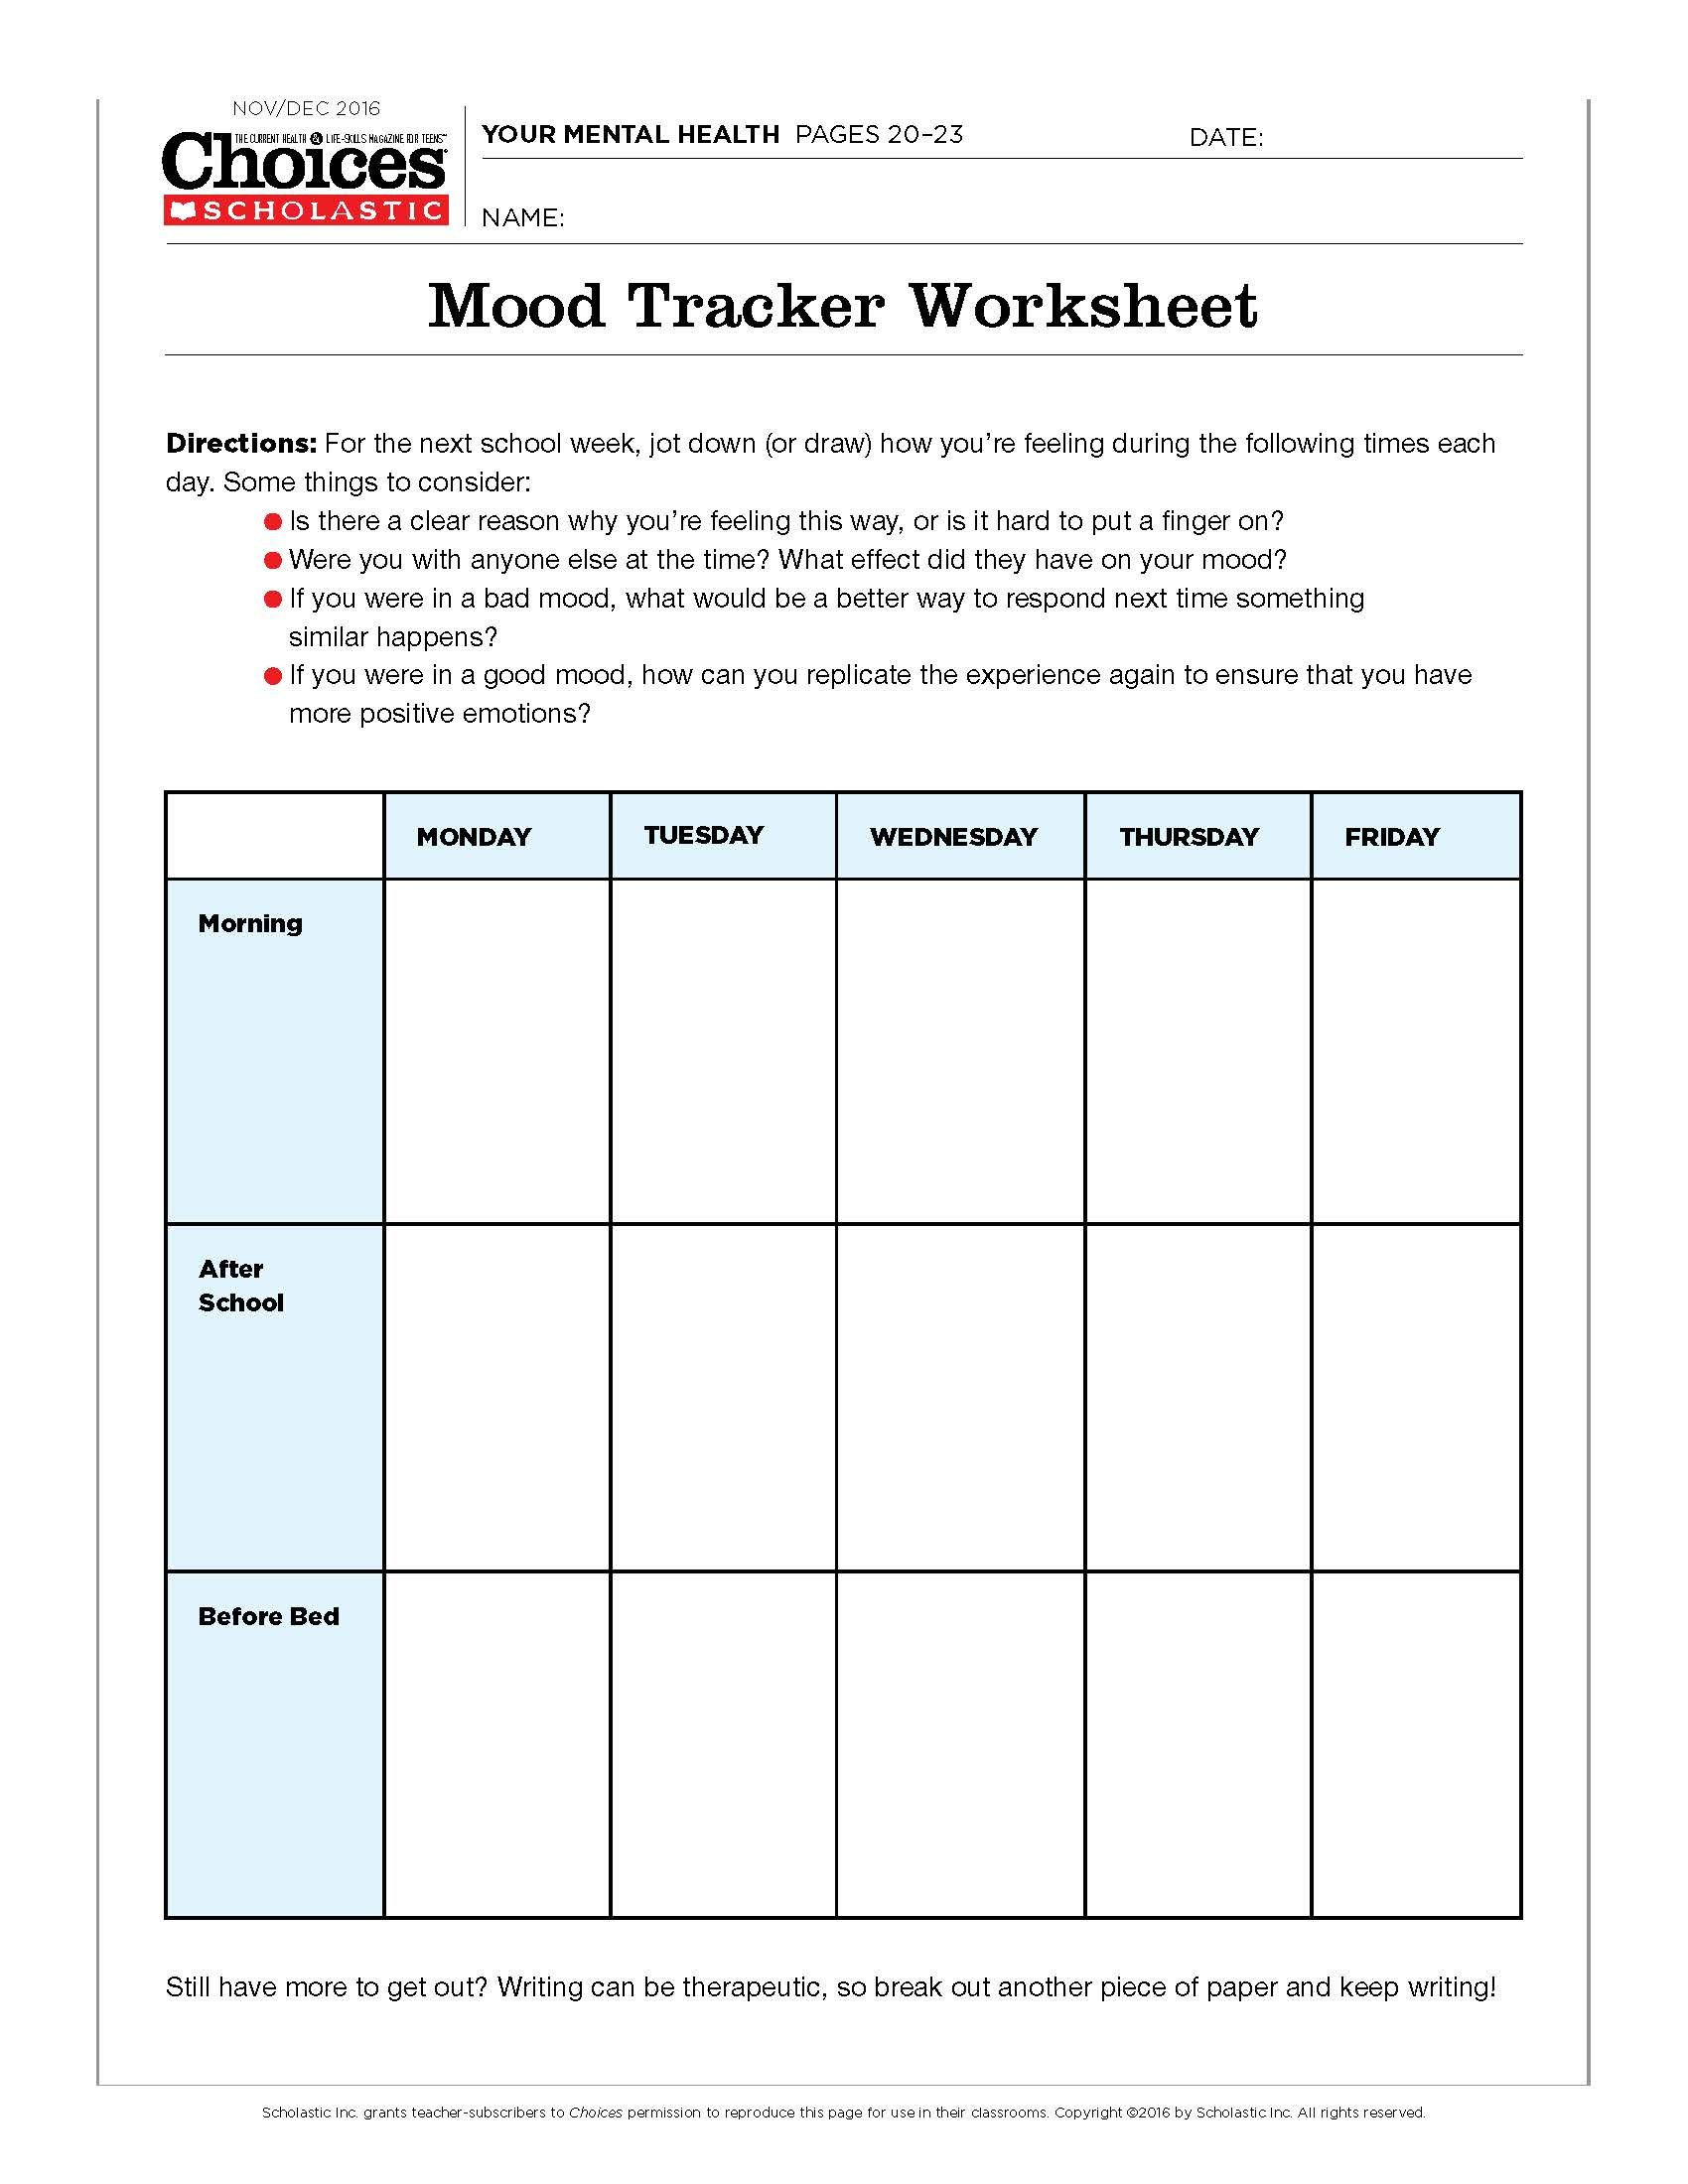 30 Mind Over Mood Worksheet